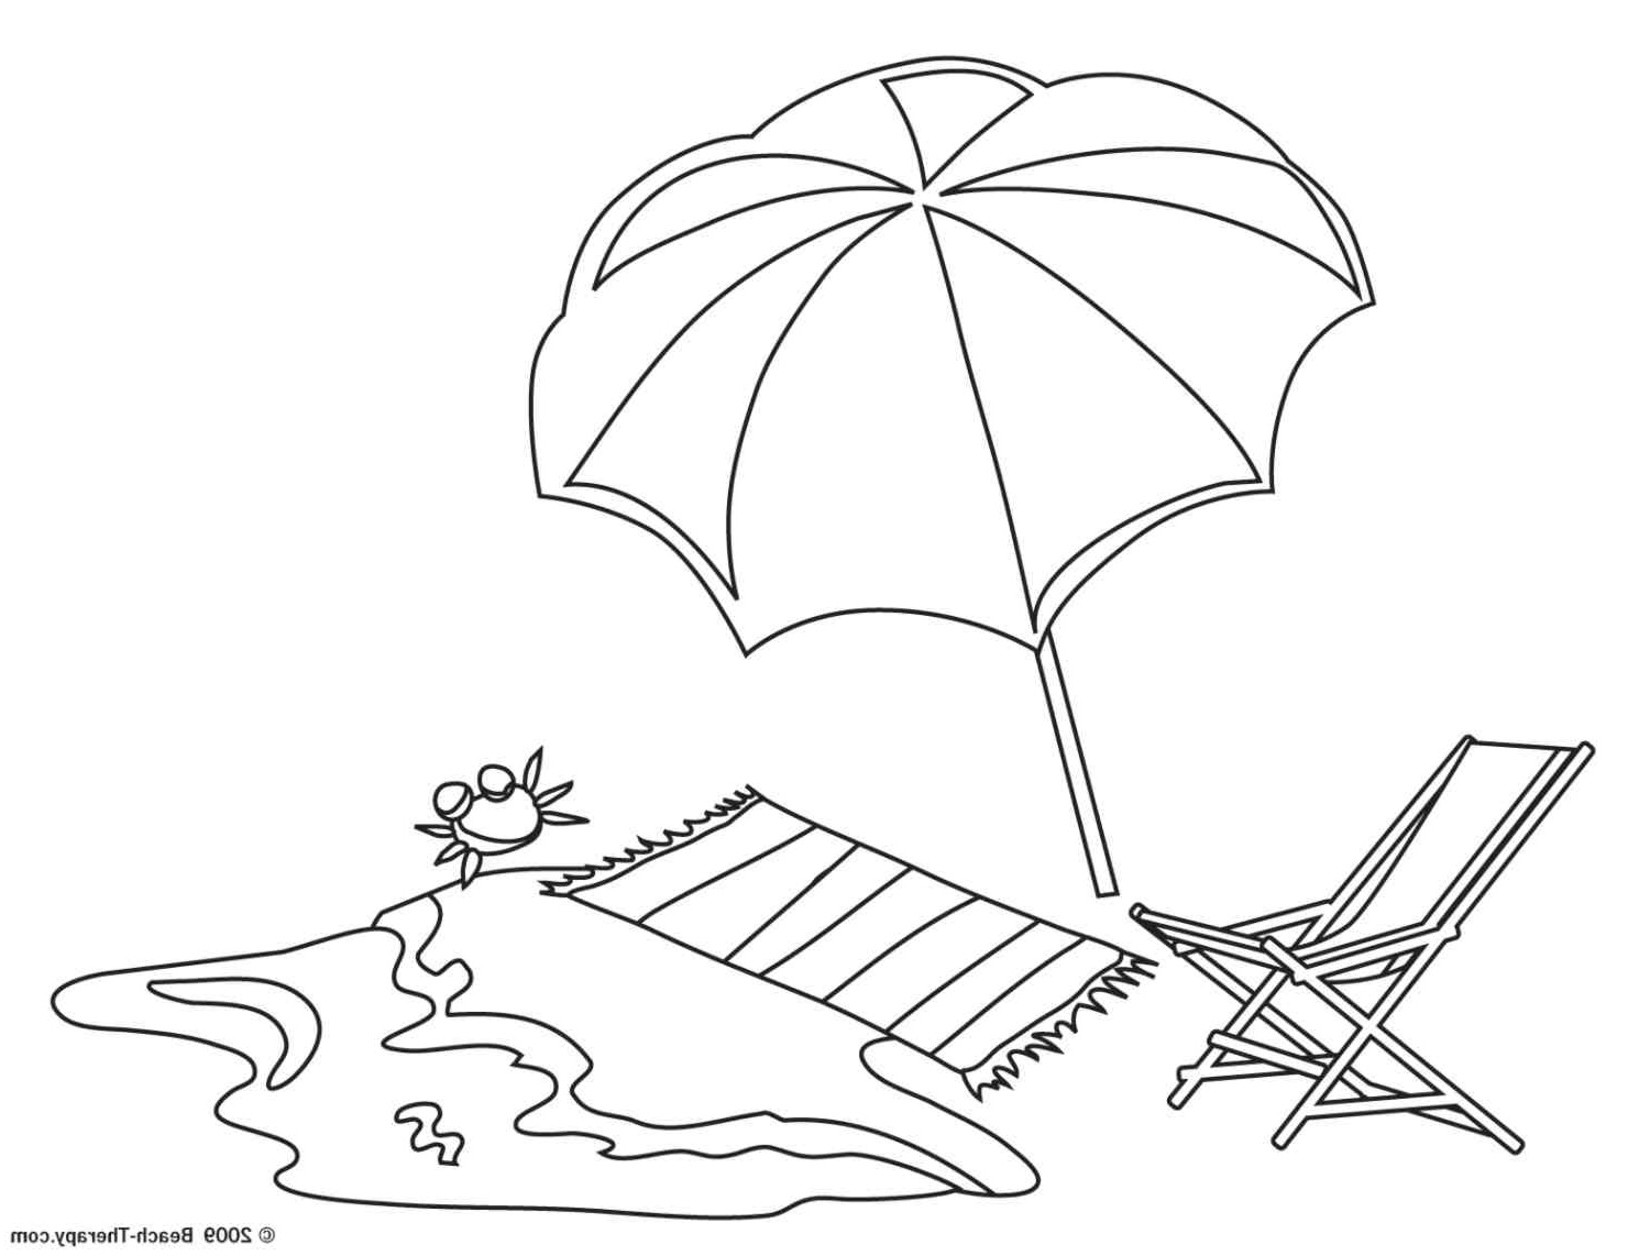 Coloring Pages Beach Umbrella - Bltidm